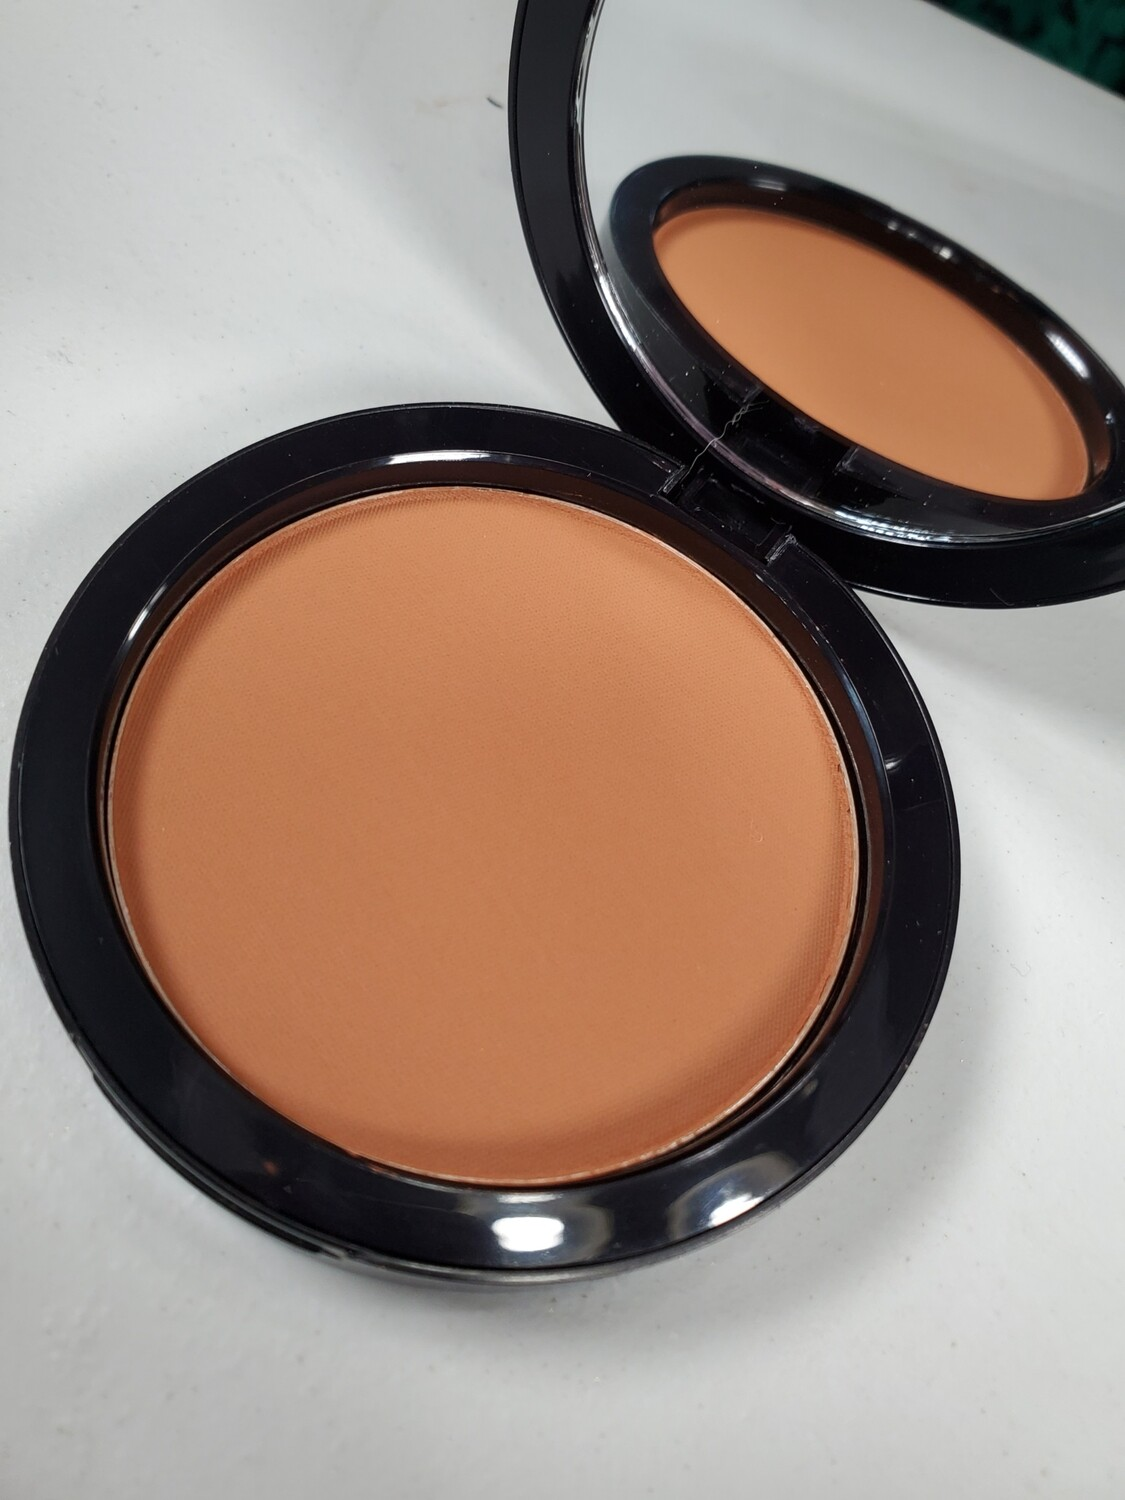 City - Dual Blend Multi-Use Foundation/Contour/Bronzing Powder